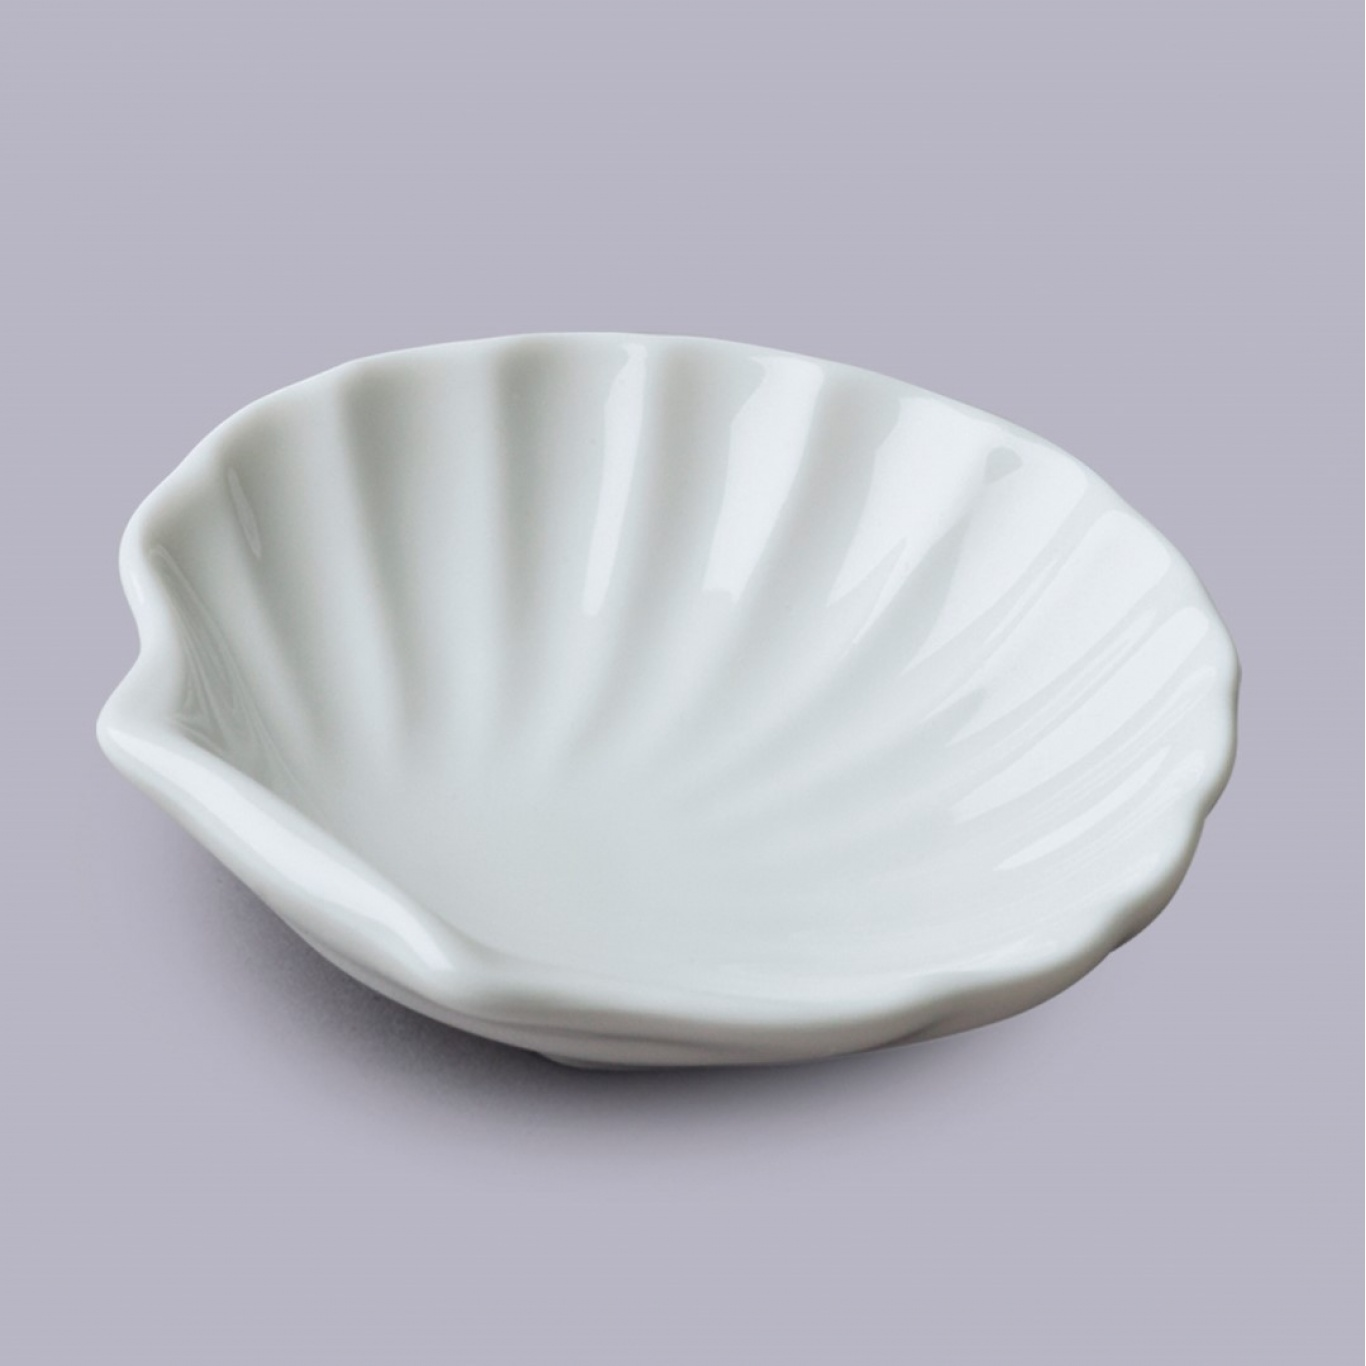 Image of Shell Dish Extra Small